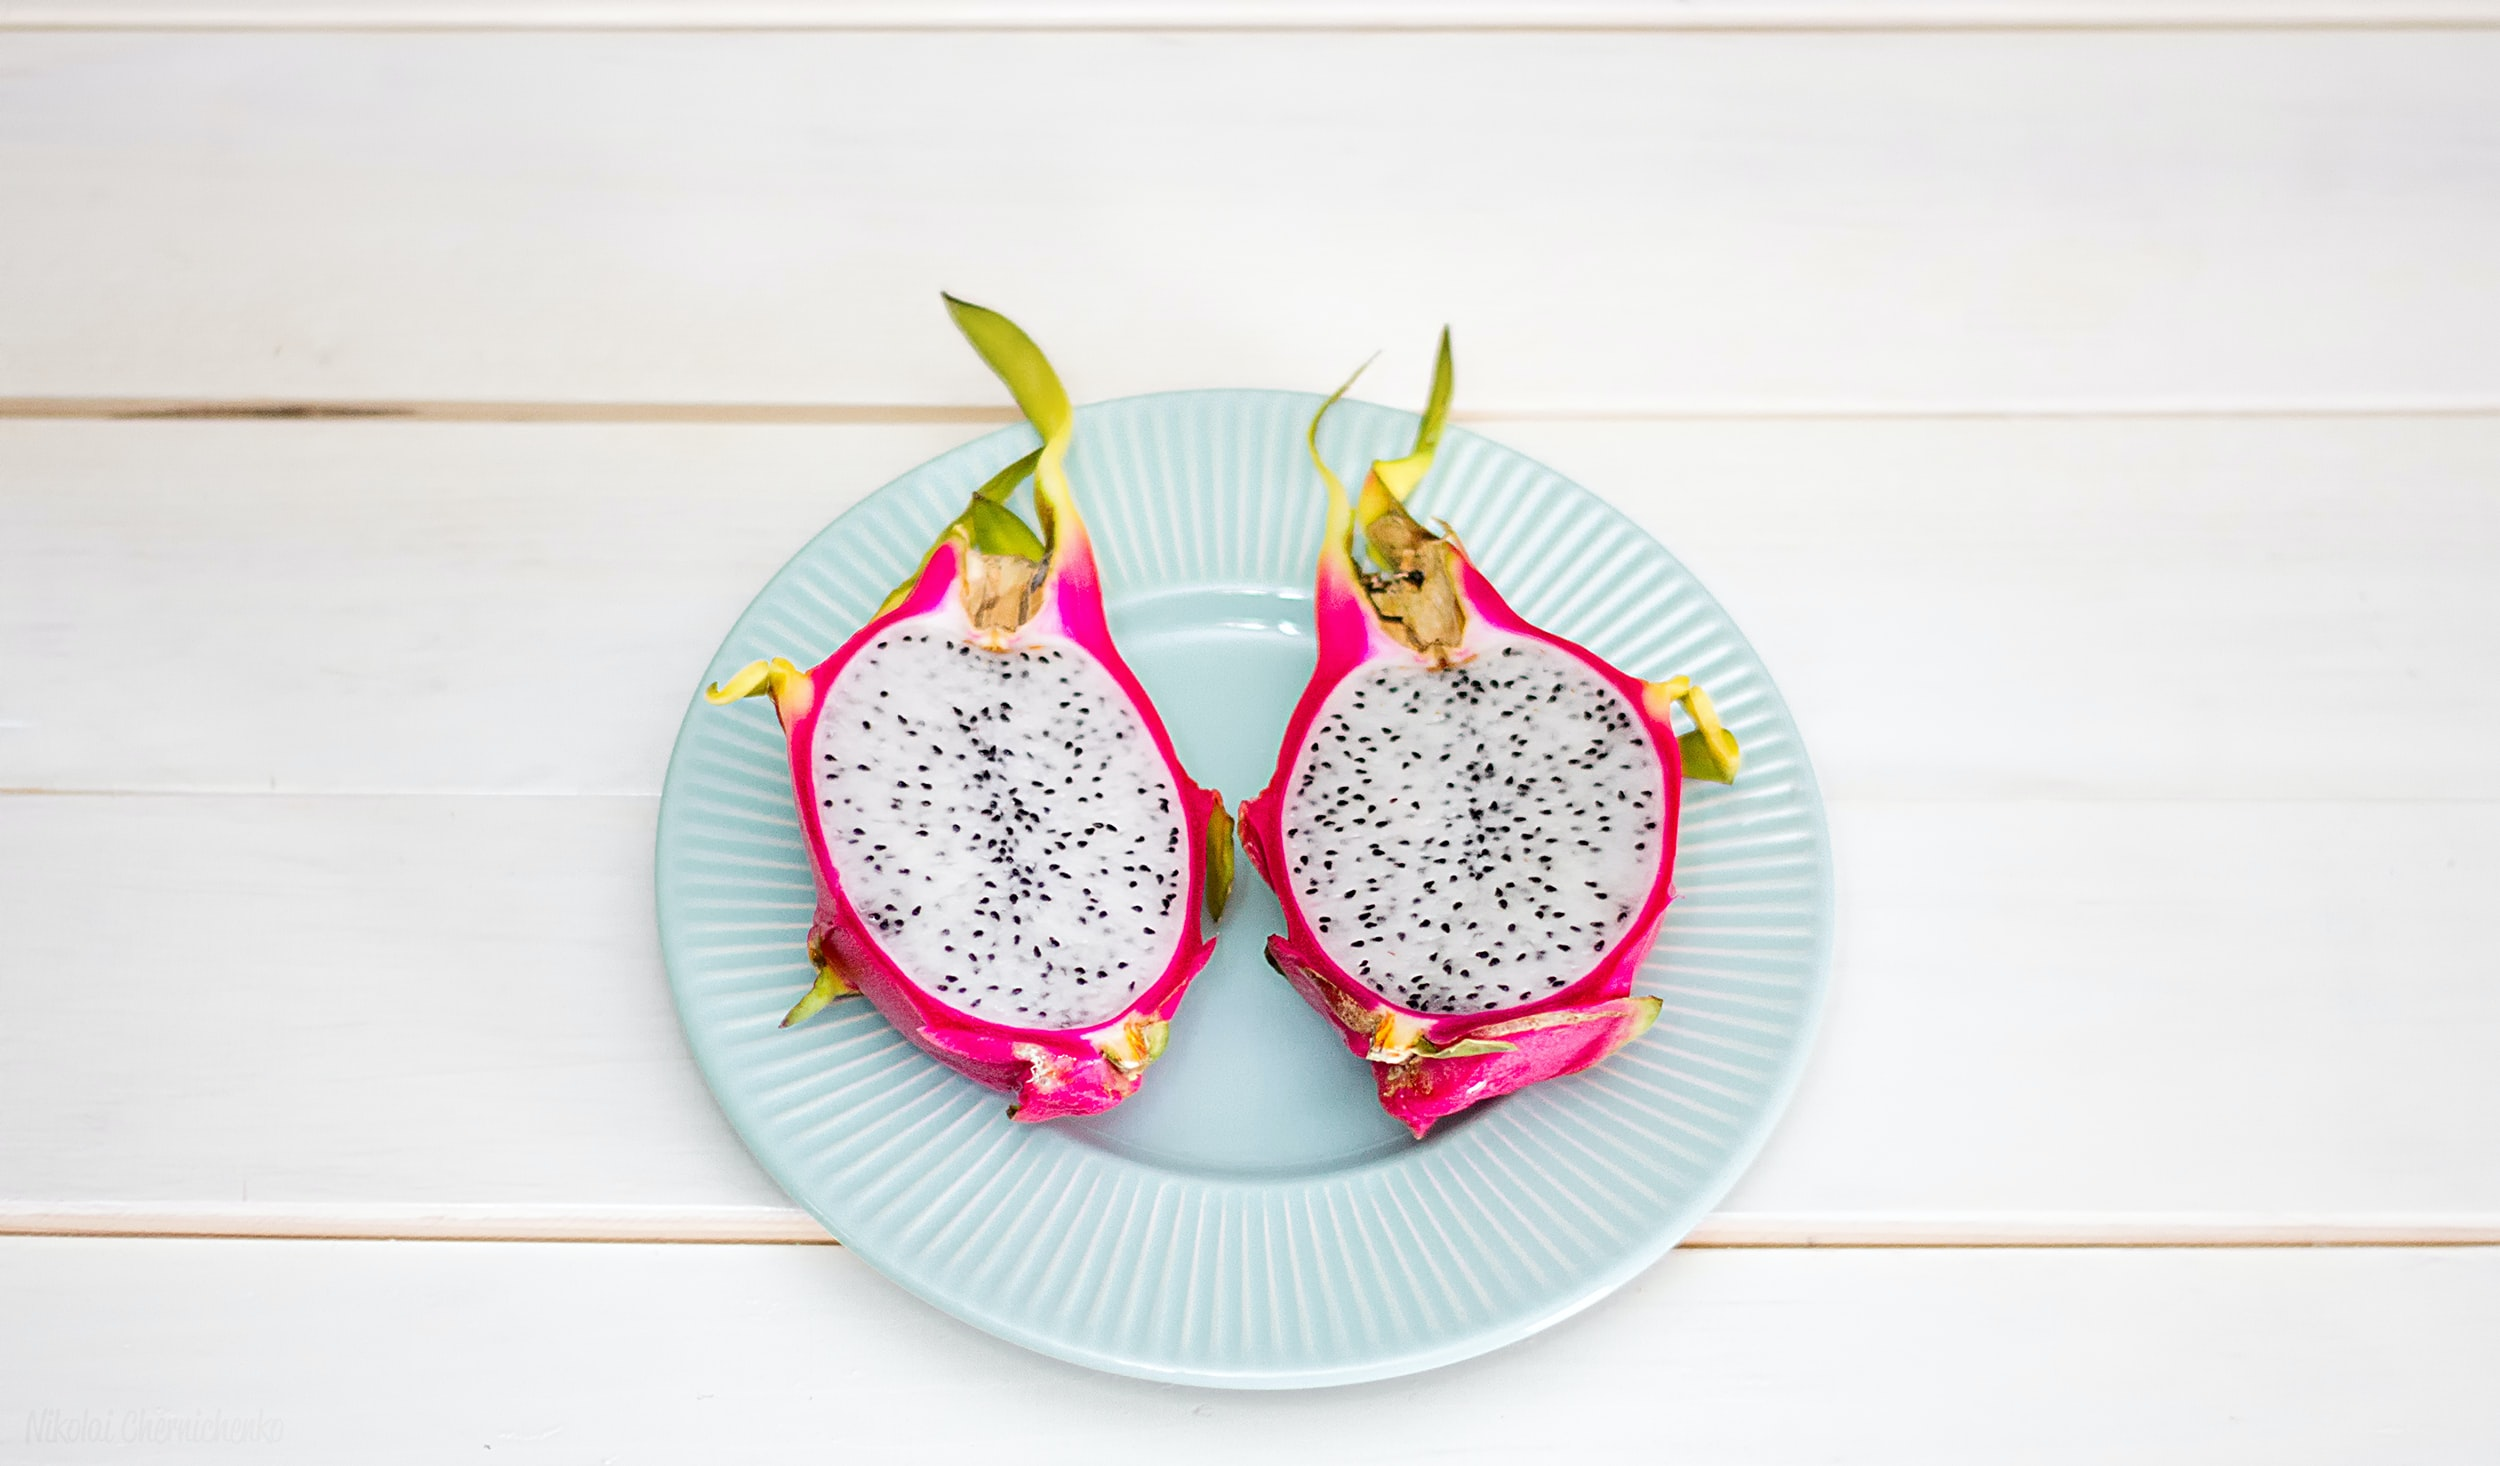 Tropical dragon fruit sliced in half on a plate